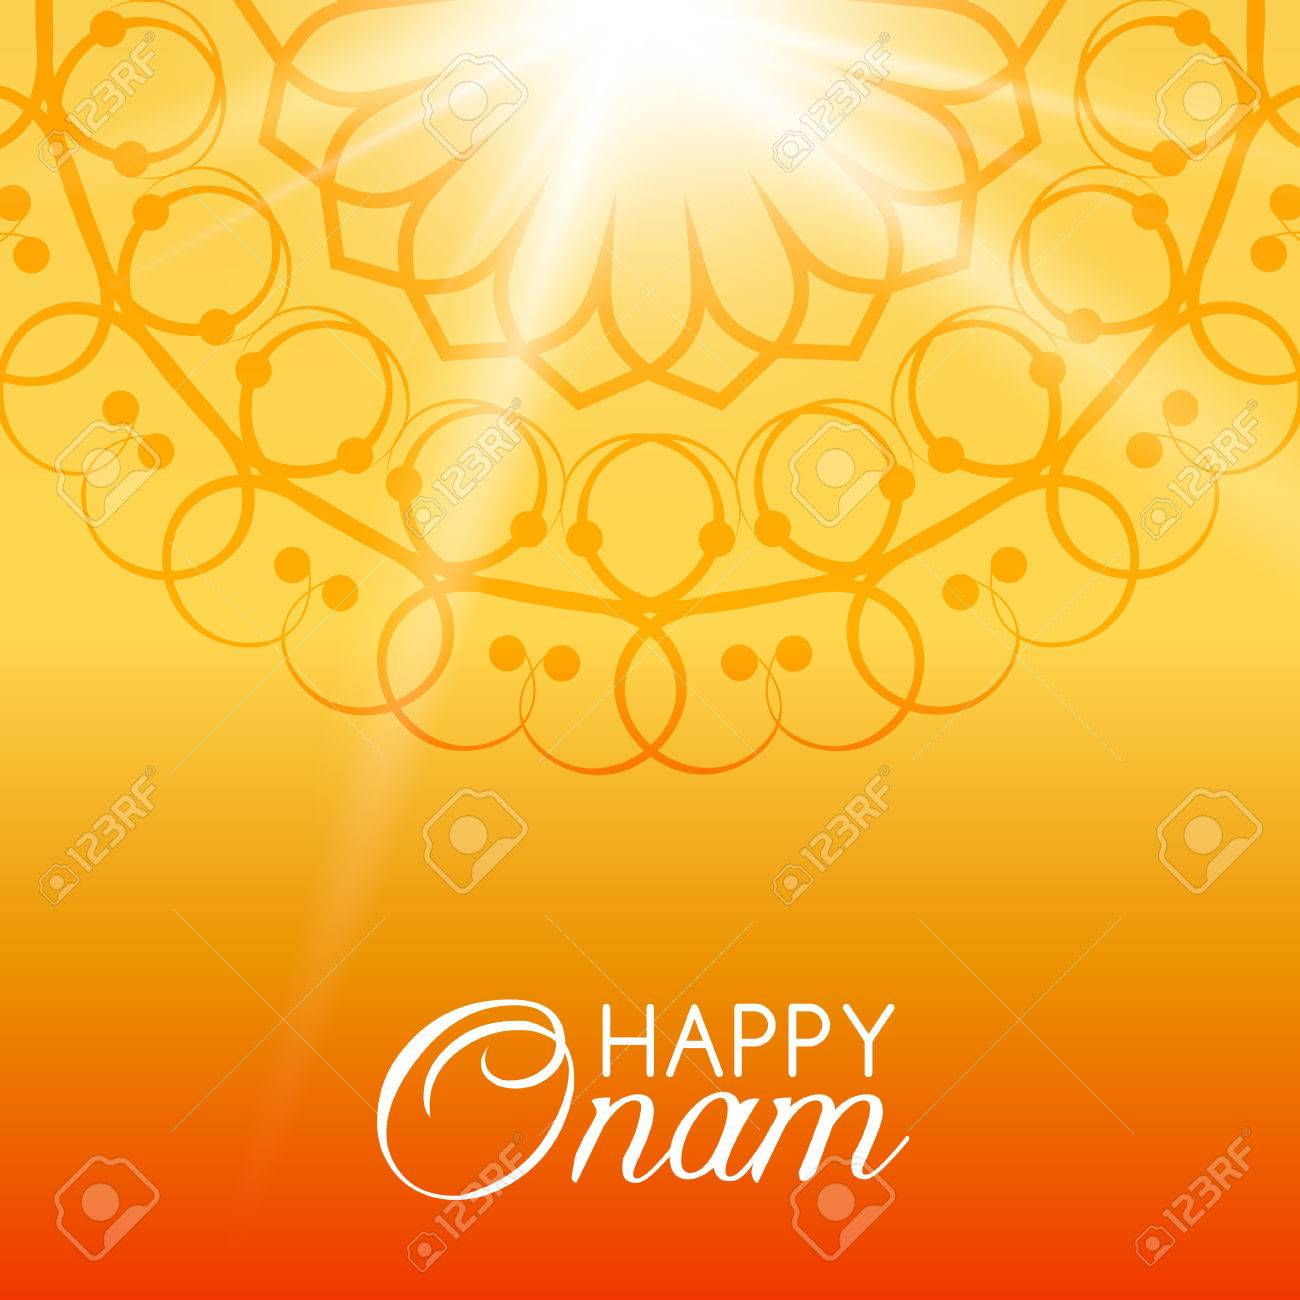 Happy onam vector greeting card royalty free cliparts vectors and happy onam vector greeting card stock vector 82824723 kristyandbryce Image collections